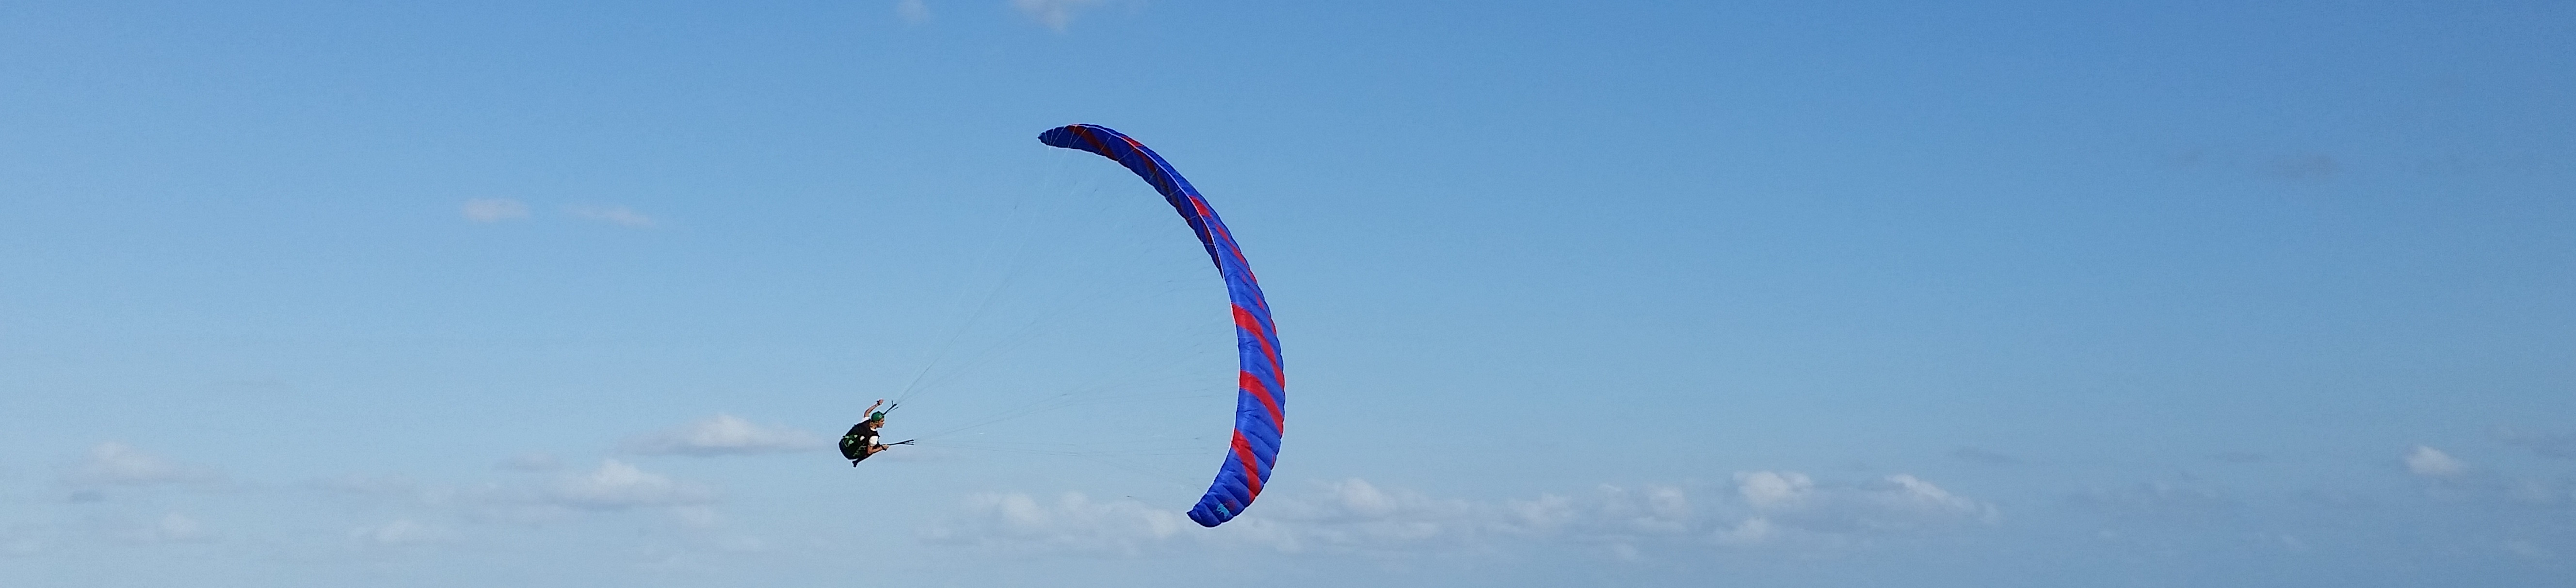 Tandem Paragliding and Pilot Courses in Newcastle, NSW - Newcastle